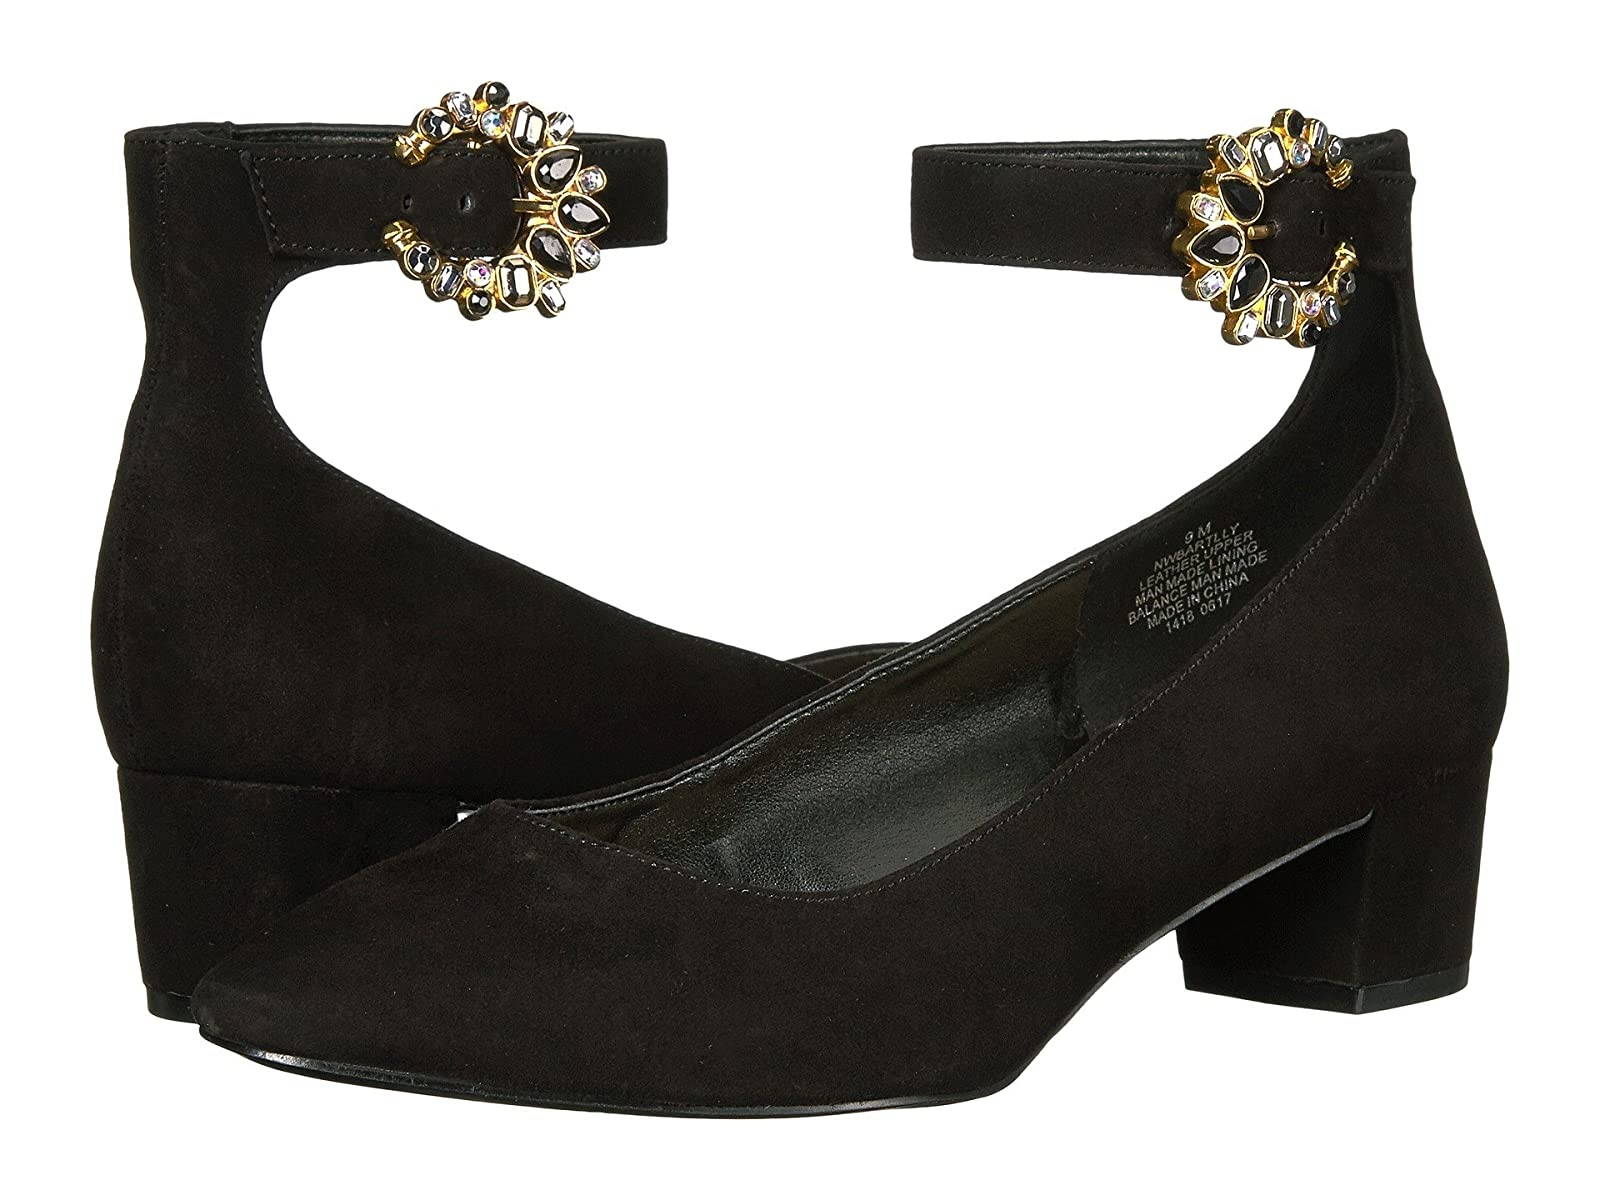 Nine West BartillyCheap and distinctive eye-catching shoes